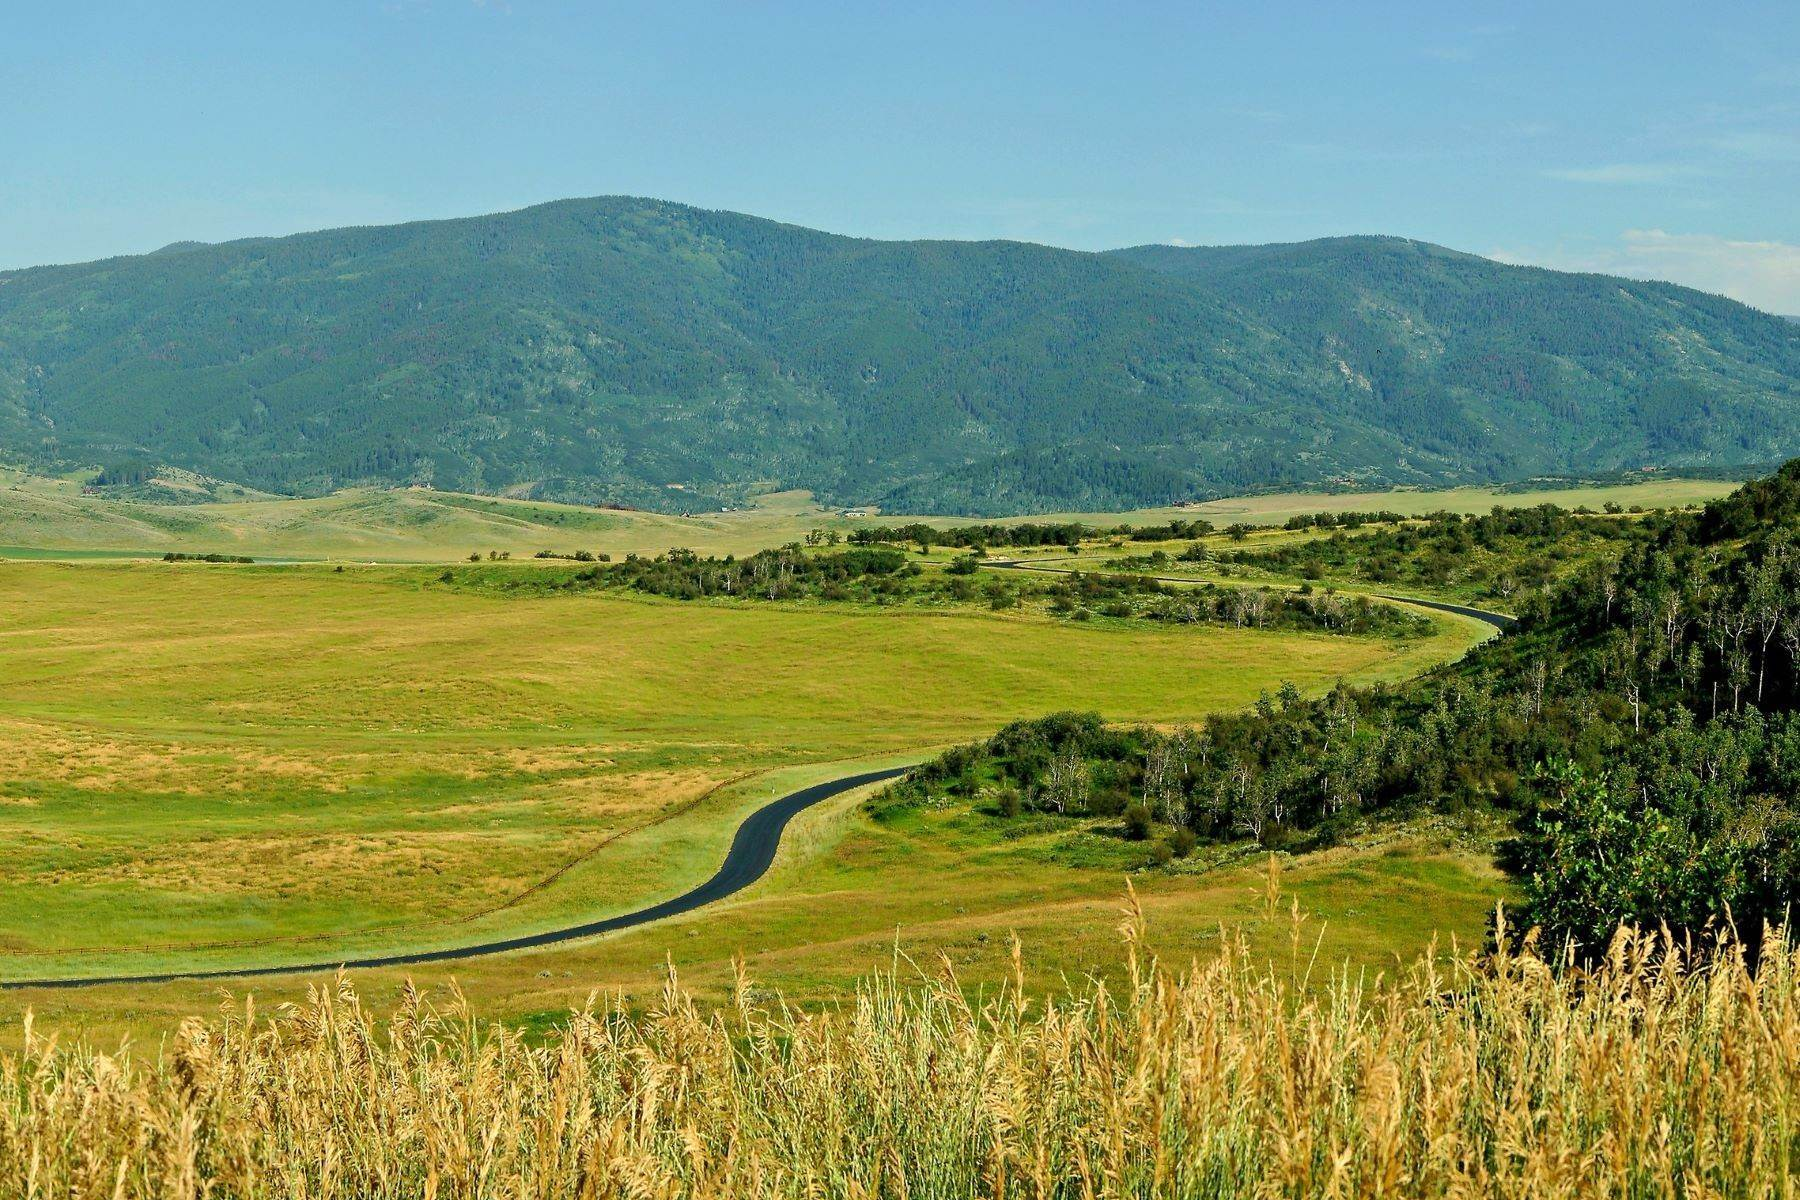 Property for Sale at Sydney Peak Ranch Lot 12 30575 Marshall Ridge Steamboat Springs, Colorado 80487 United States